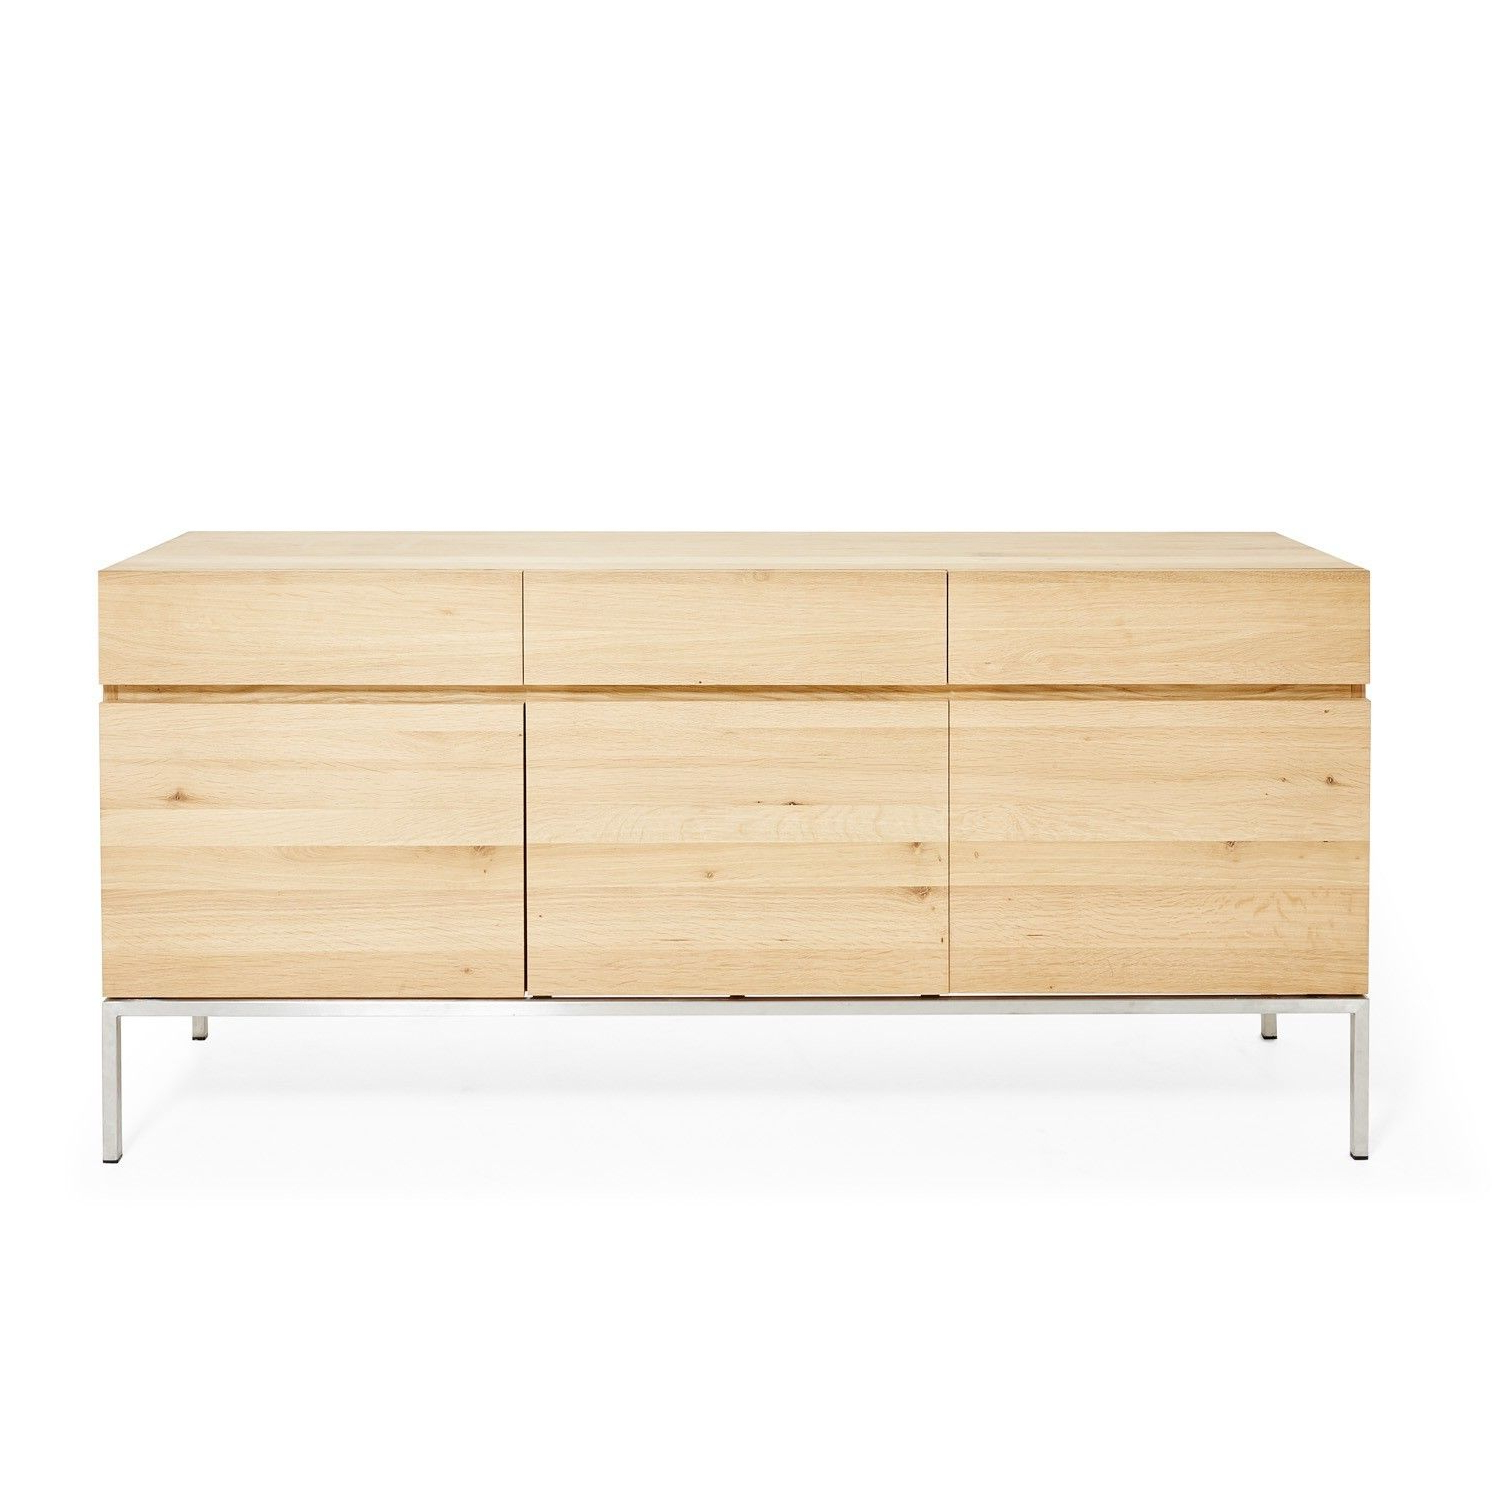 Well Liked Oil Pale Finish 3 Door Sideboards Intended For Natural Grain & Steel Sideboards At Abc Home & Carpet (View 19 of 20)